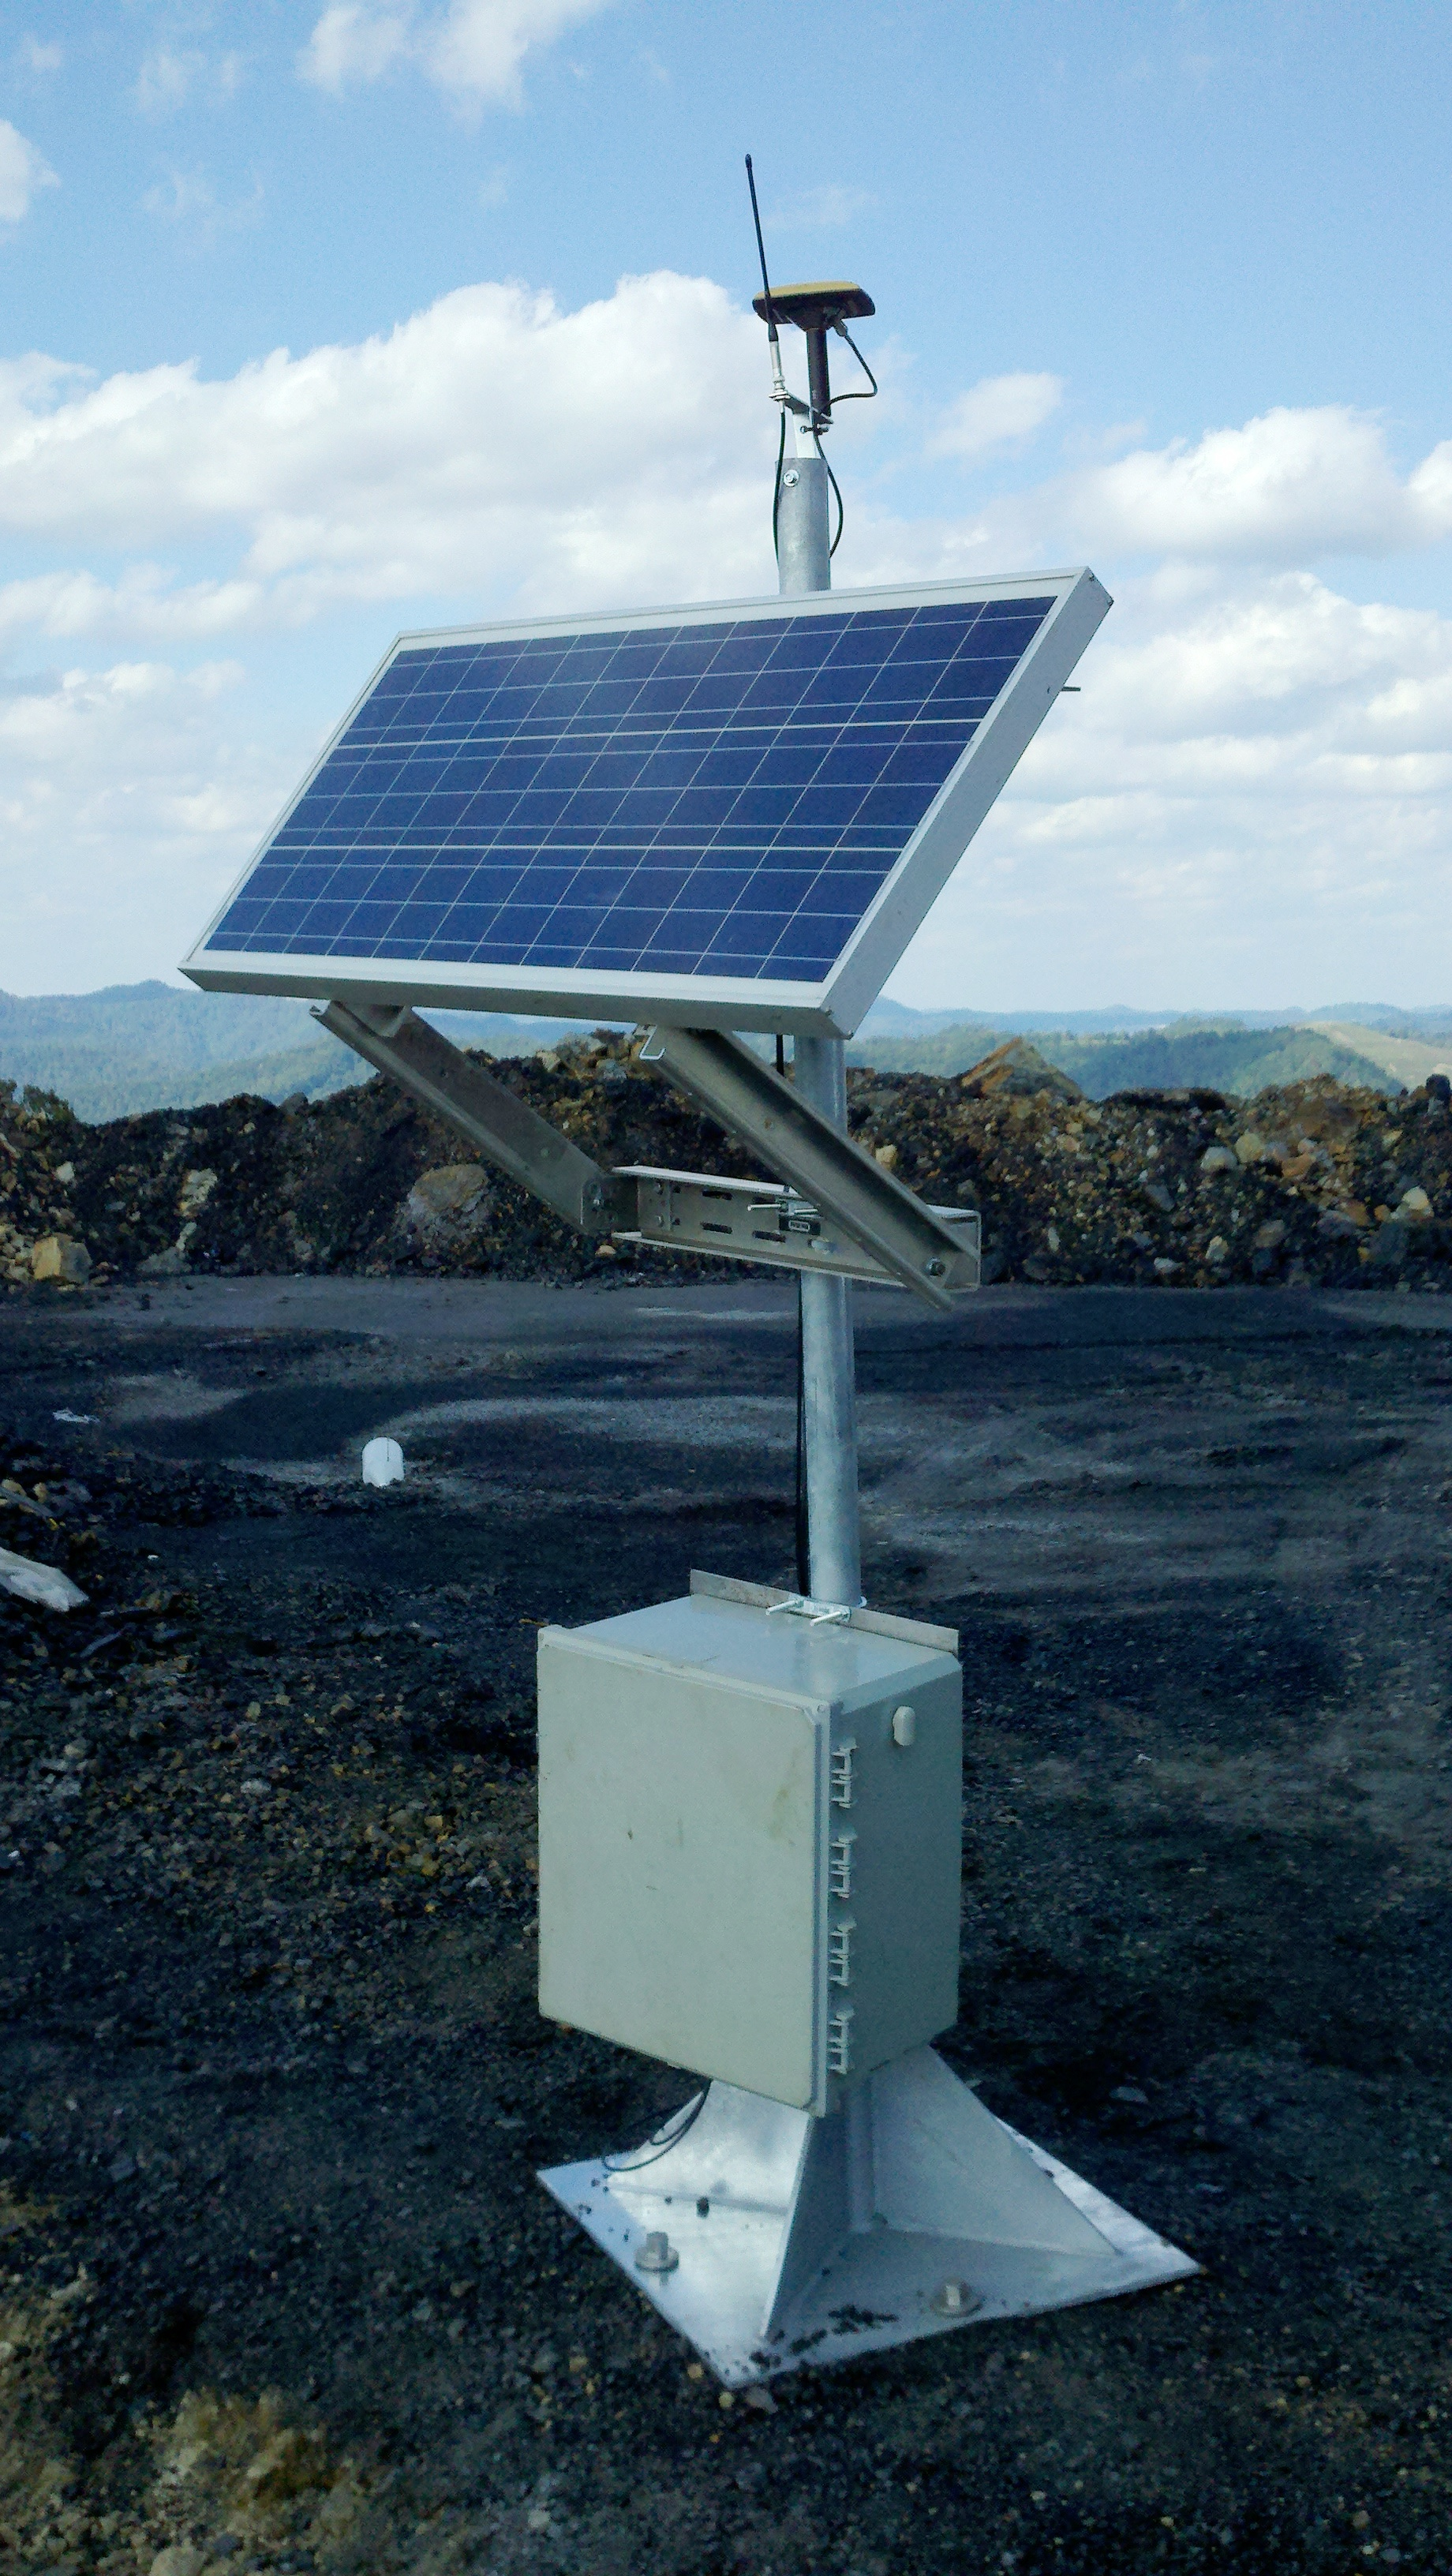 18-inch Penetrators securing a solar powered GPS base station